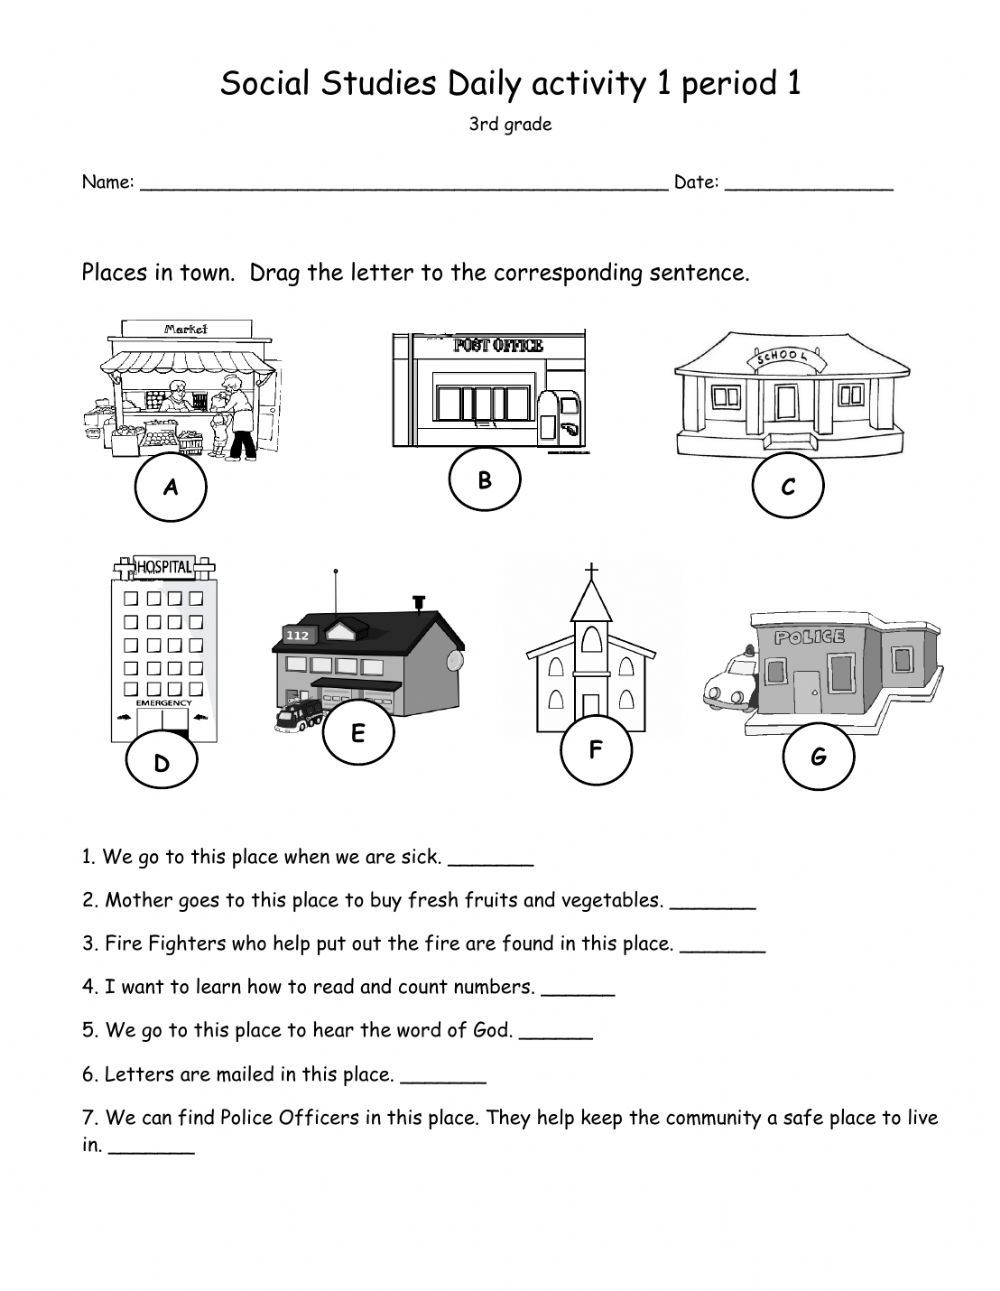 hight resolution of Social Studies Daily activity 1 period 1 - Grade 3 worksheet